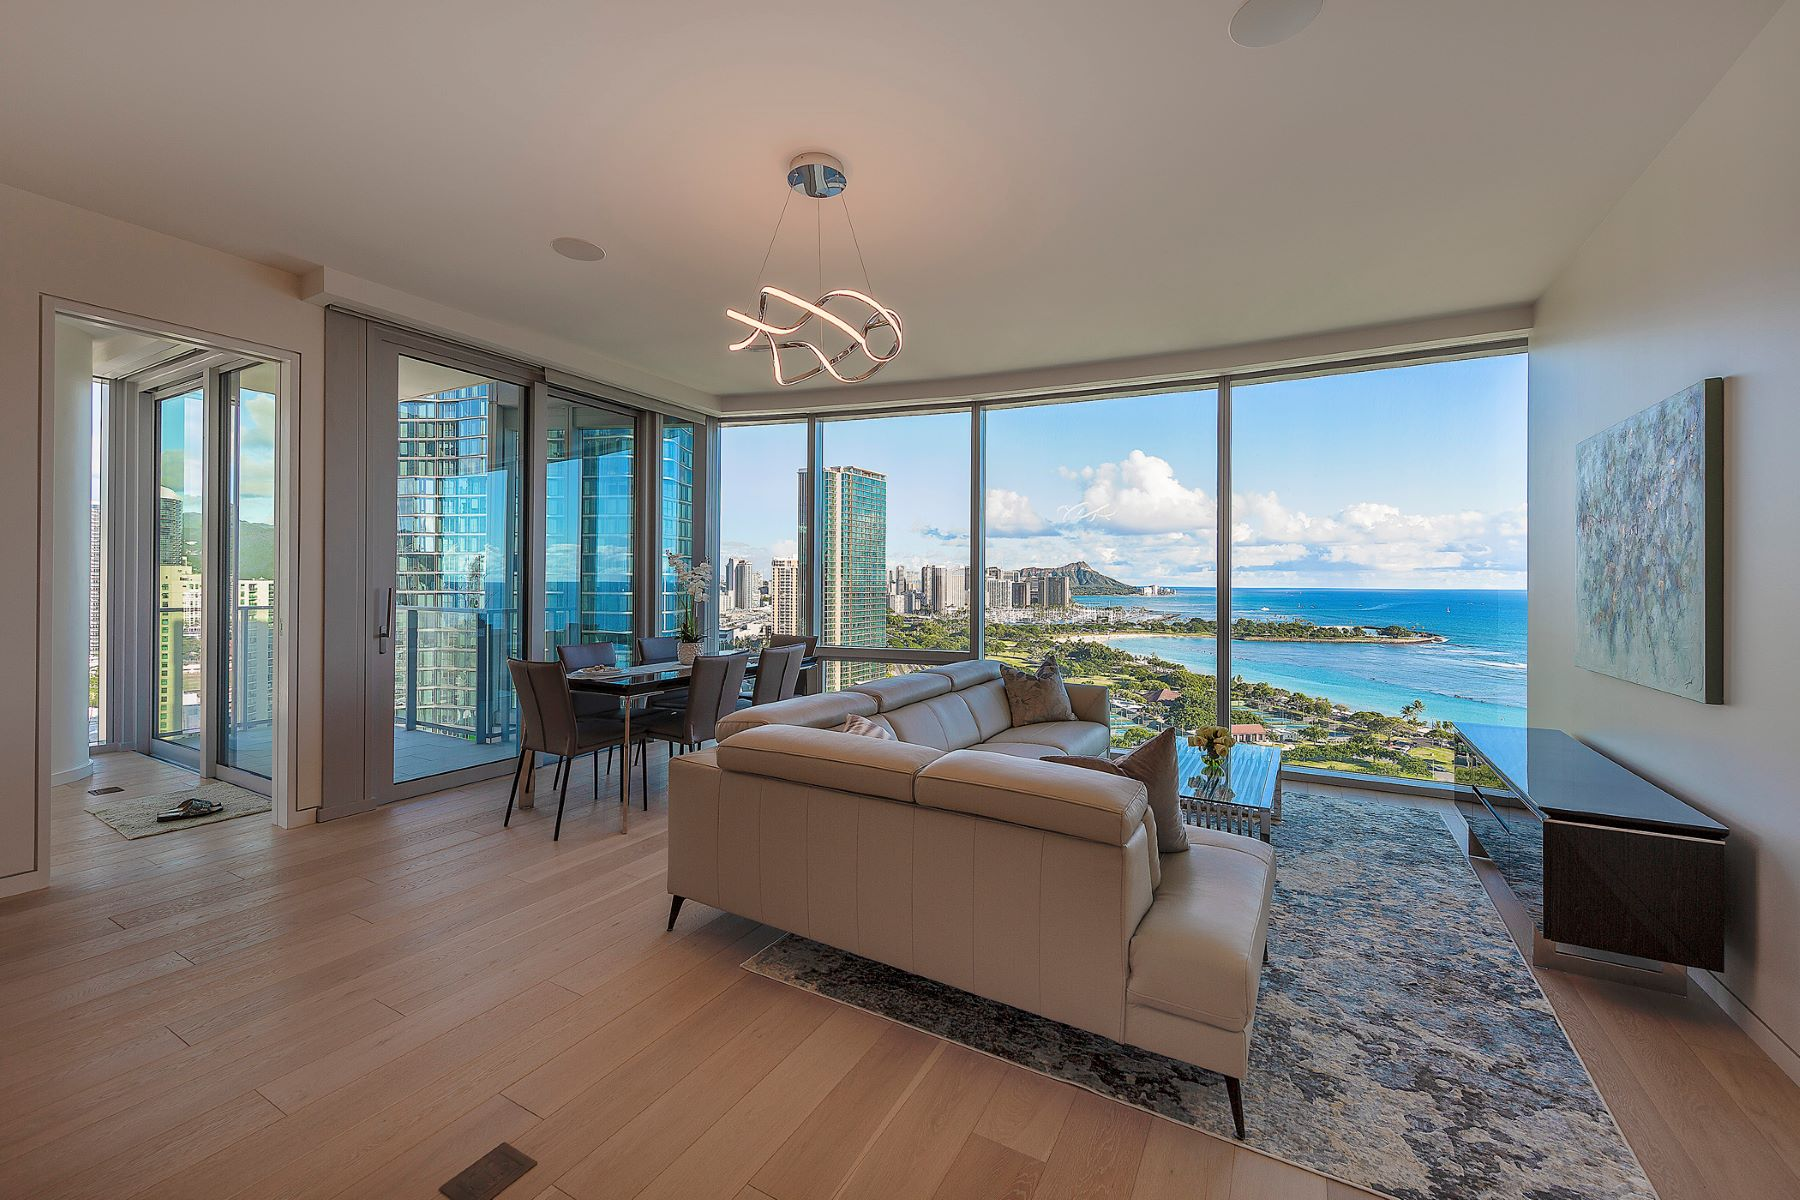 Condominiums 為 出售 在 Waiea, Luxury Condo, High Rise Condo, Ocean View, Kakaako 1118 Ala Moana Blvd #2206, Honolulu, 夏威夷 96814 美國